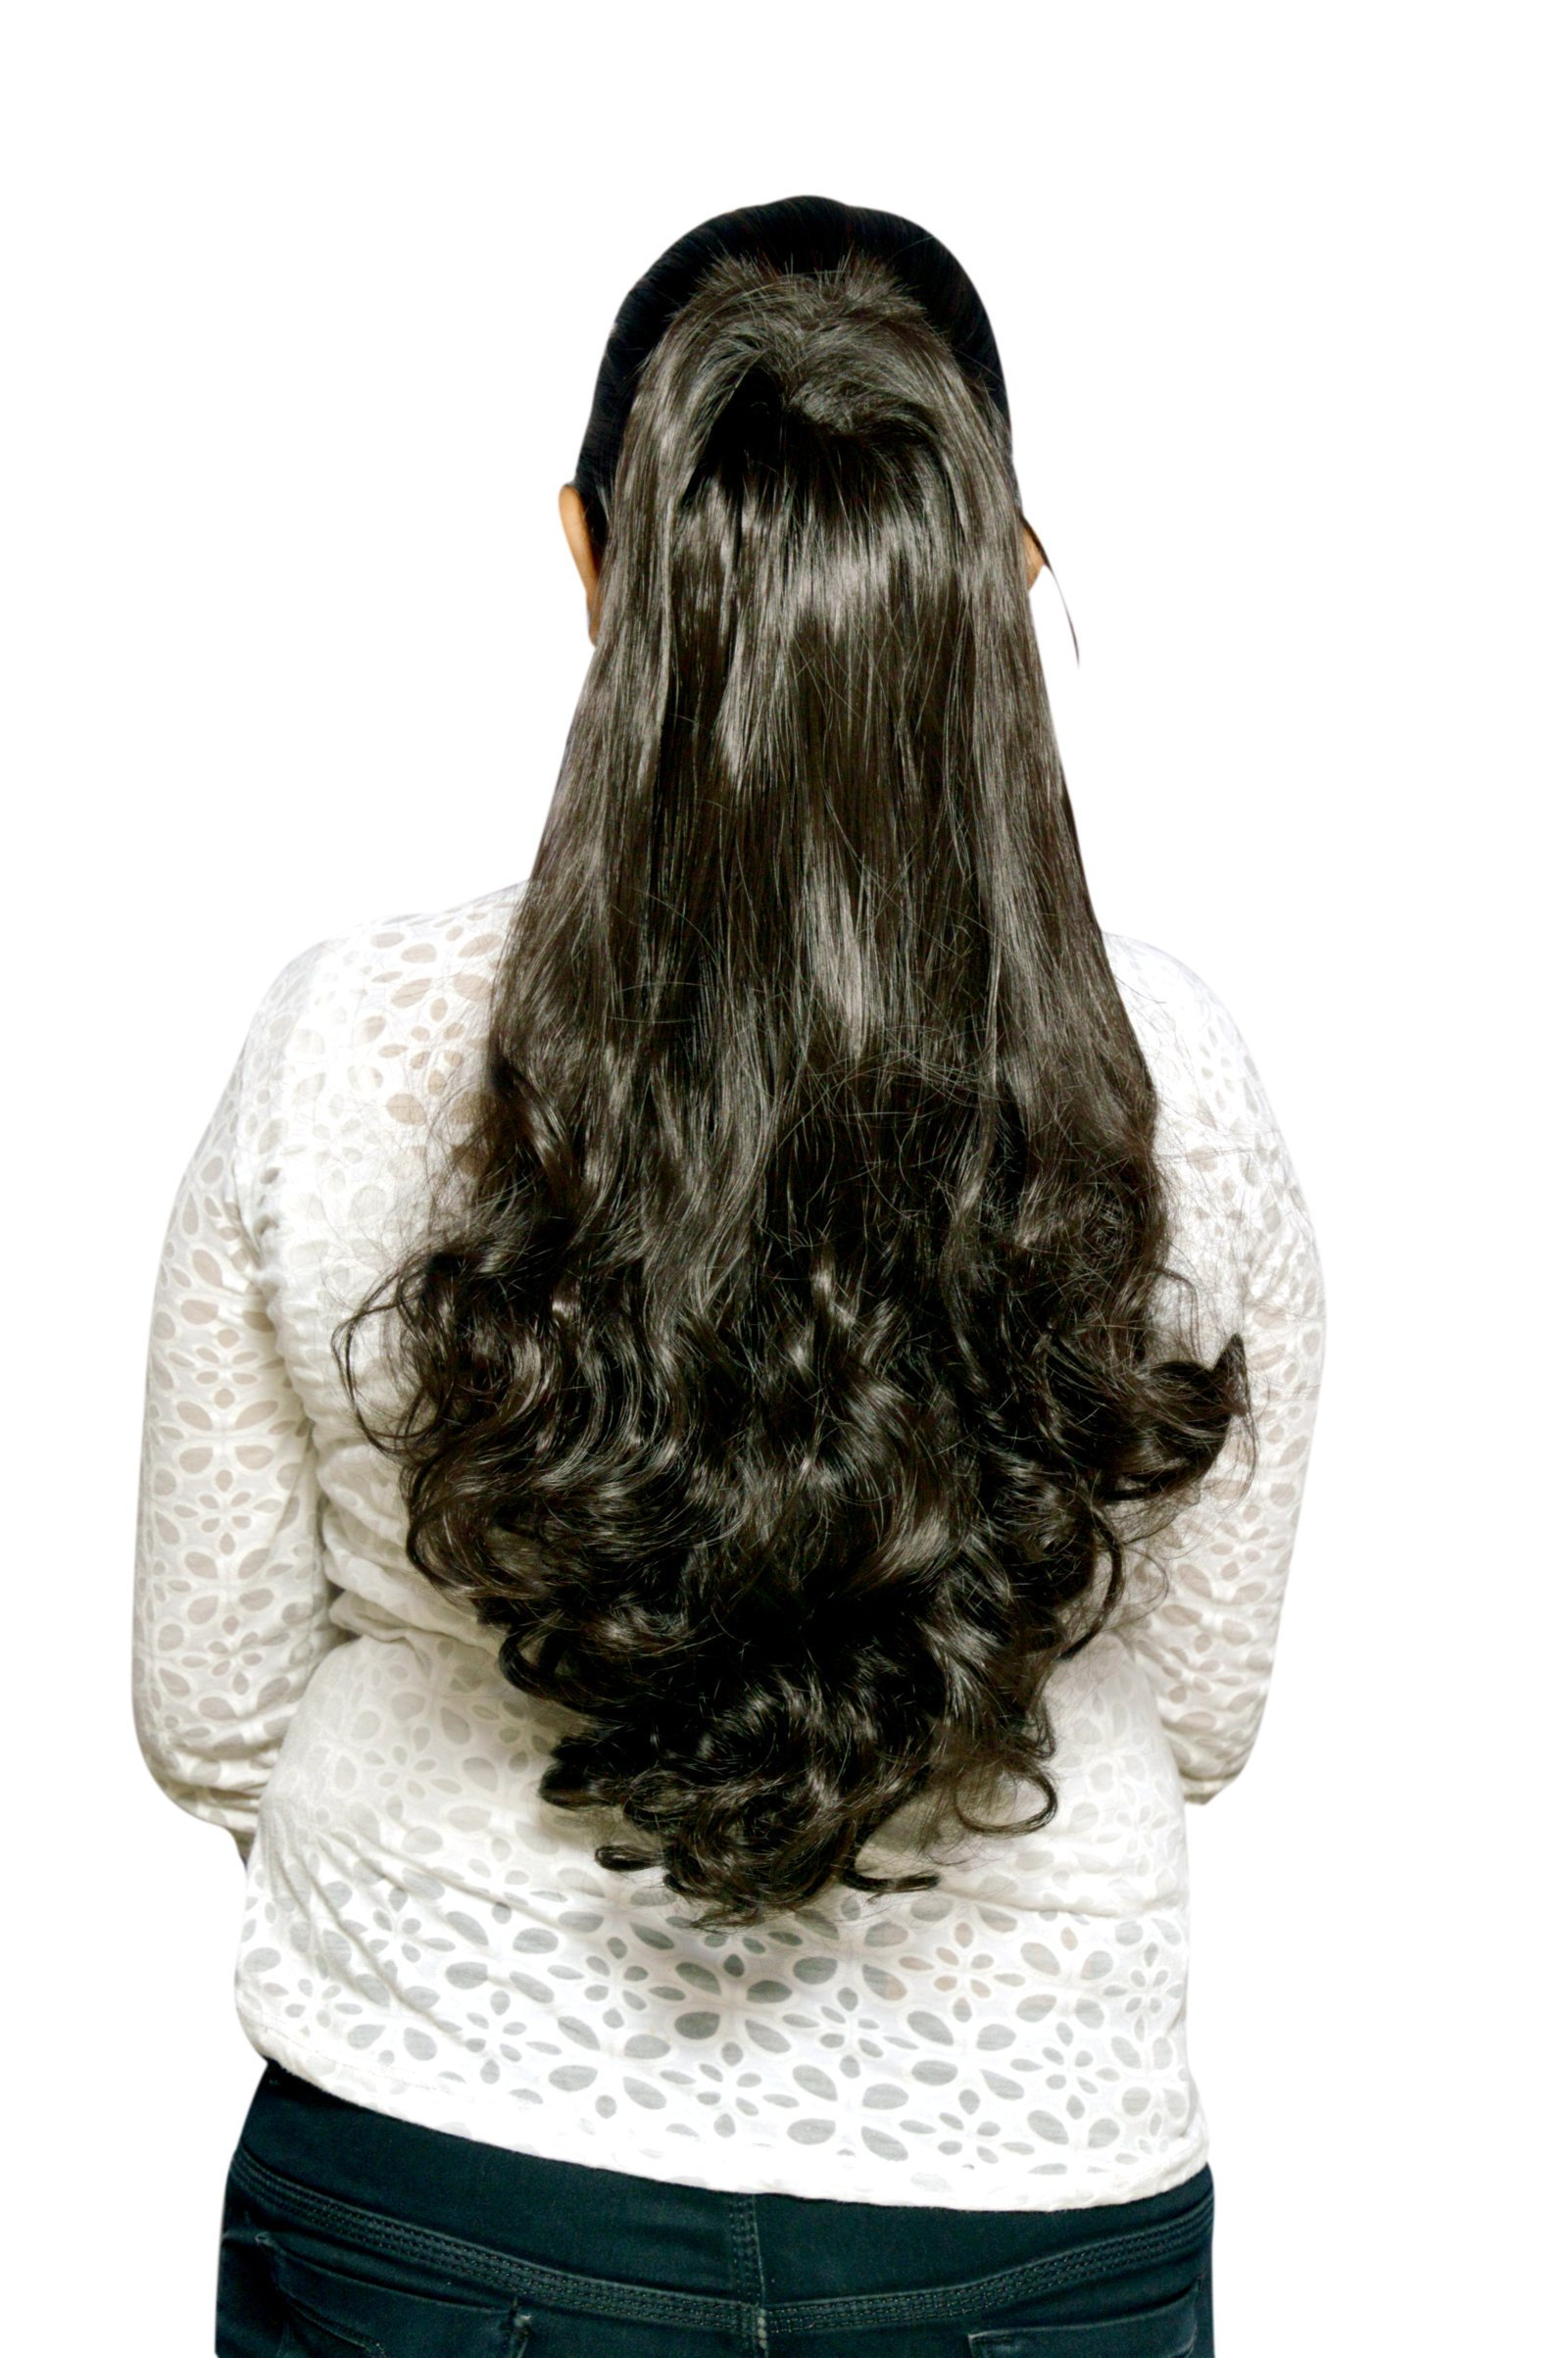 Homeoculture Party Hair Extensions with Plastic Clutcher, 24 Inches, Black product image